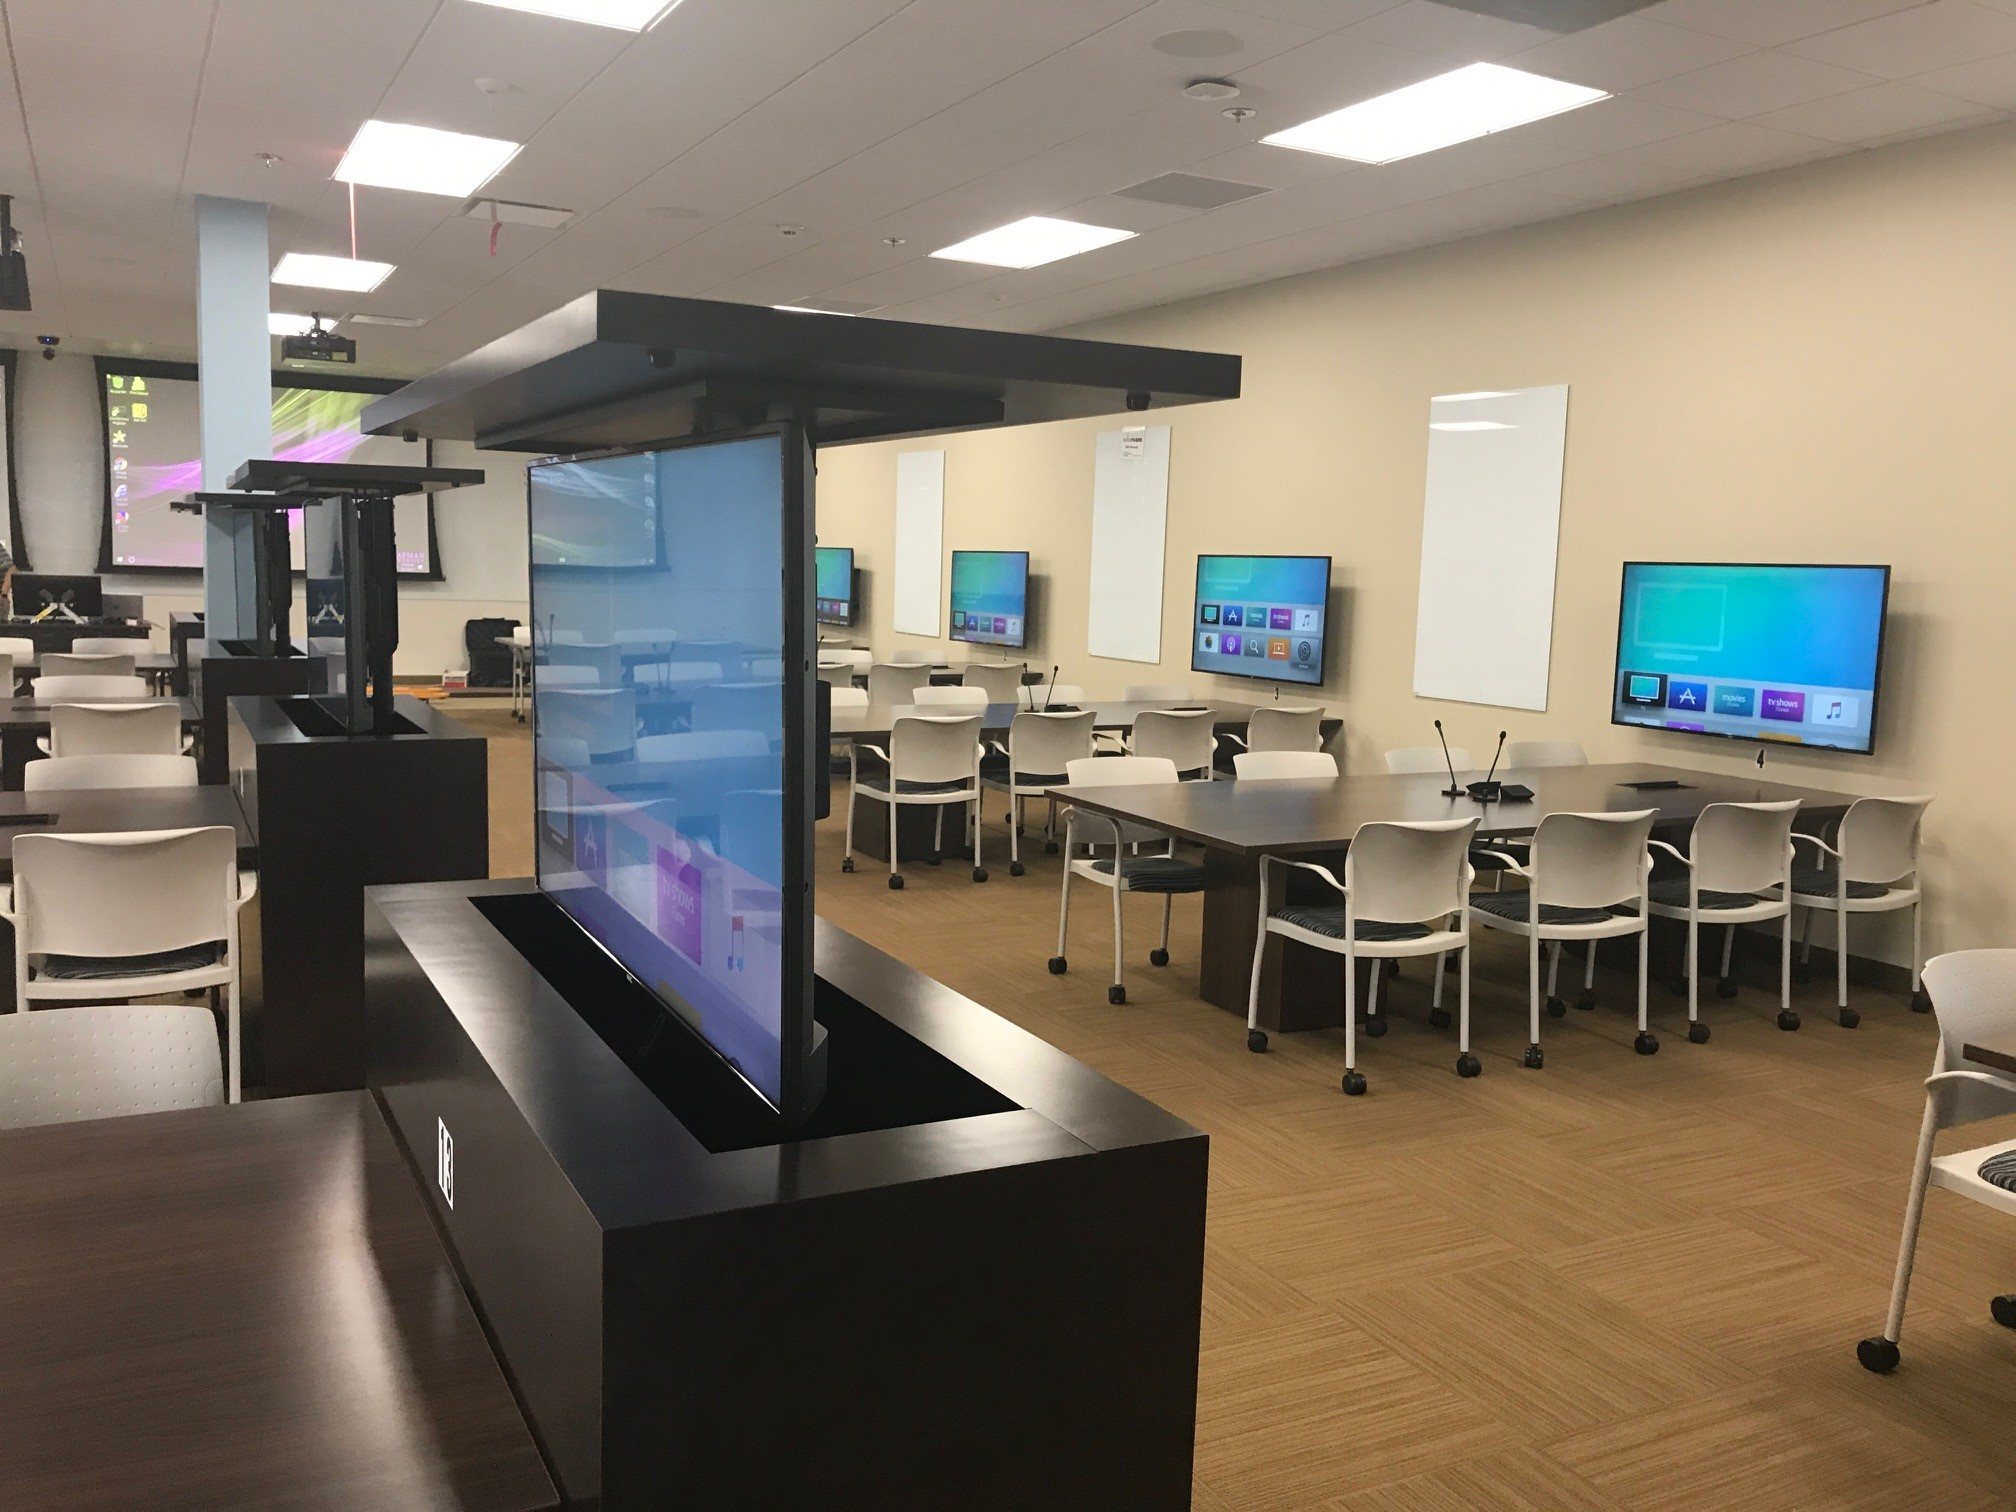 Classroom Overhaul Information Systems Amp Technology